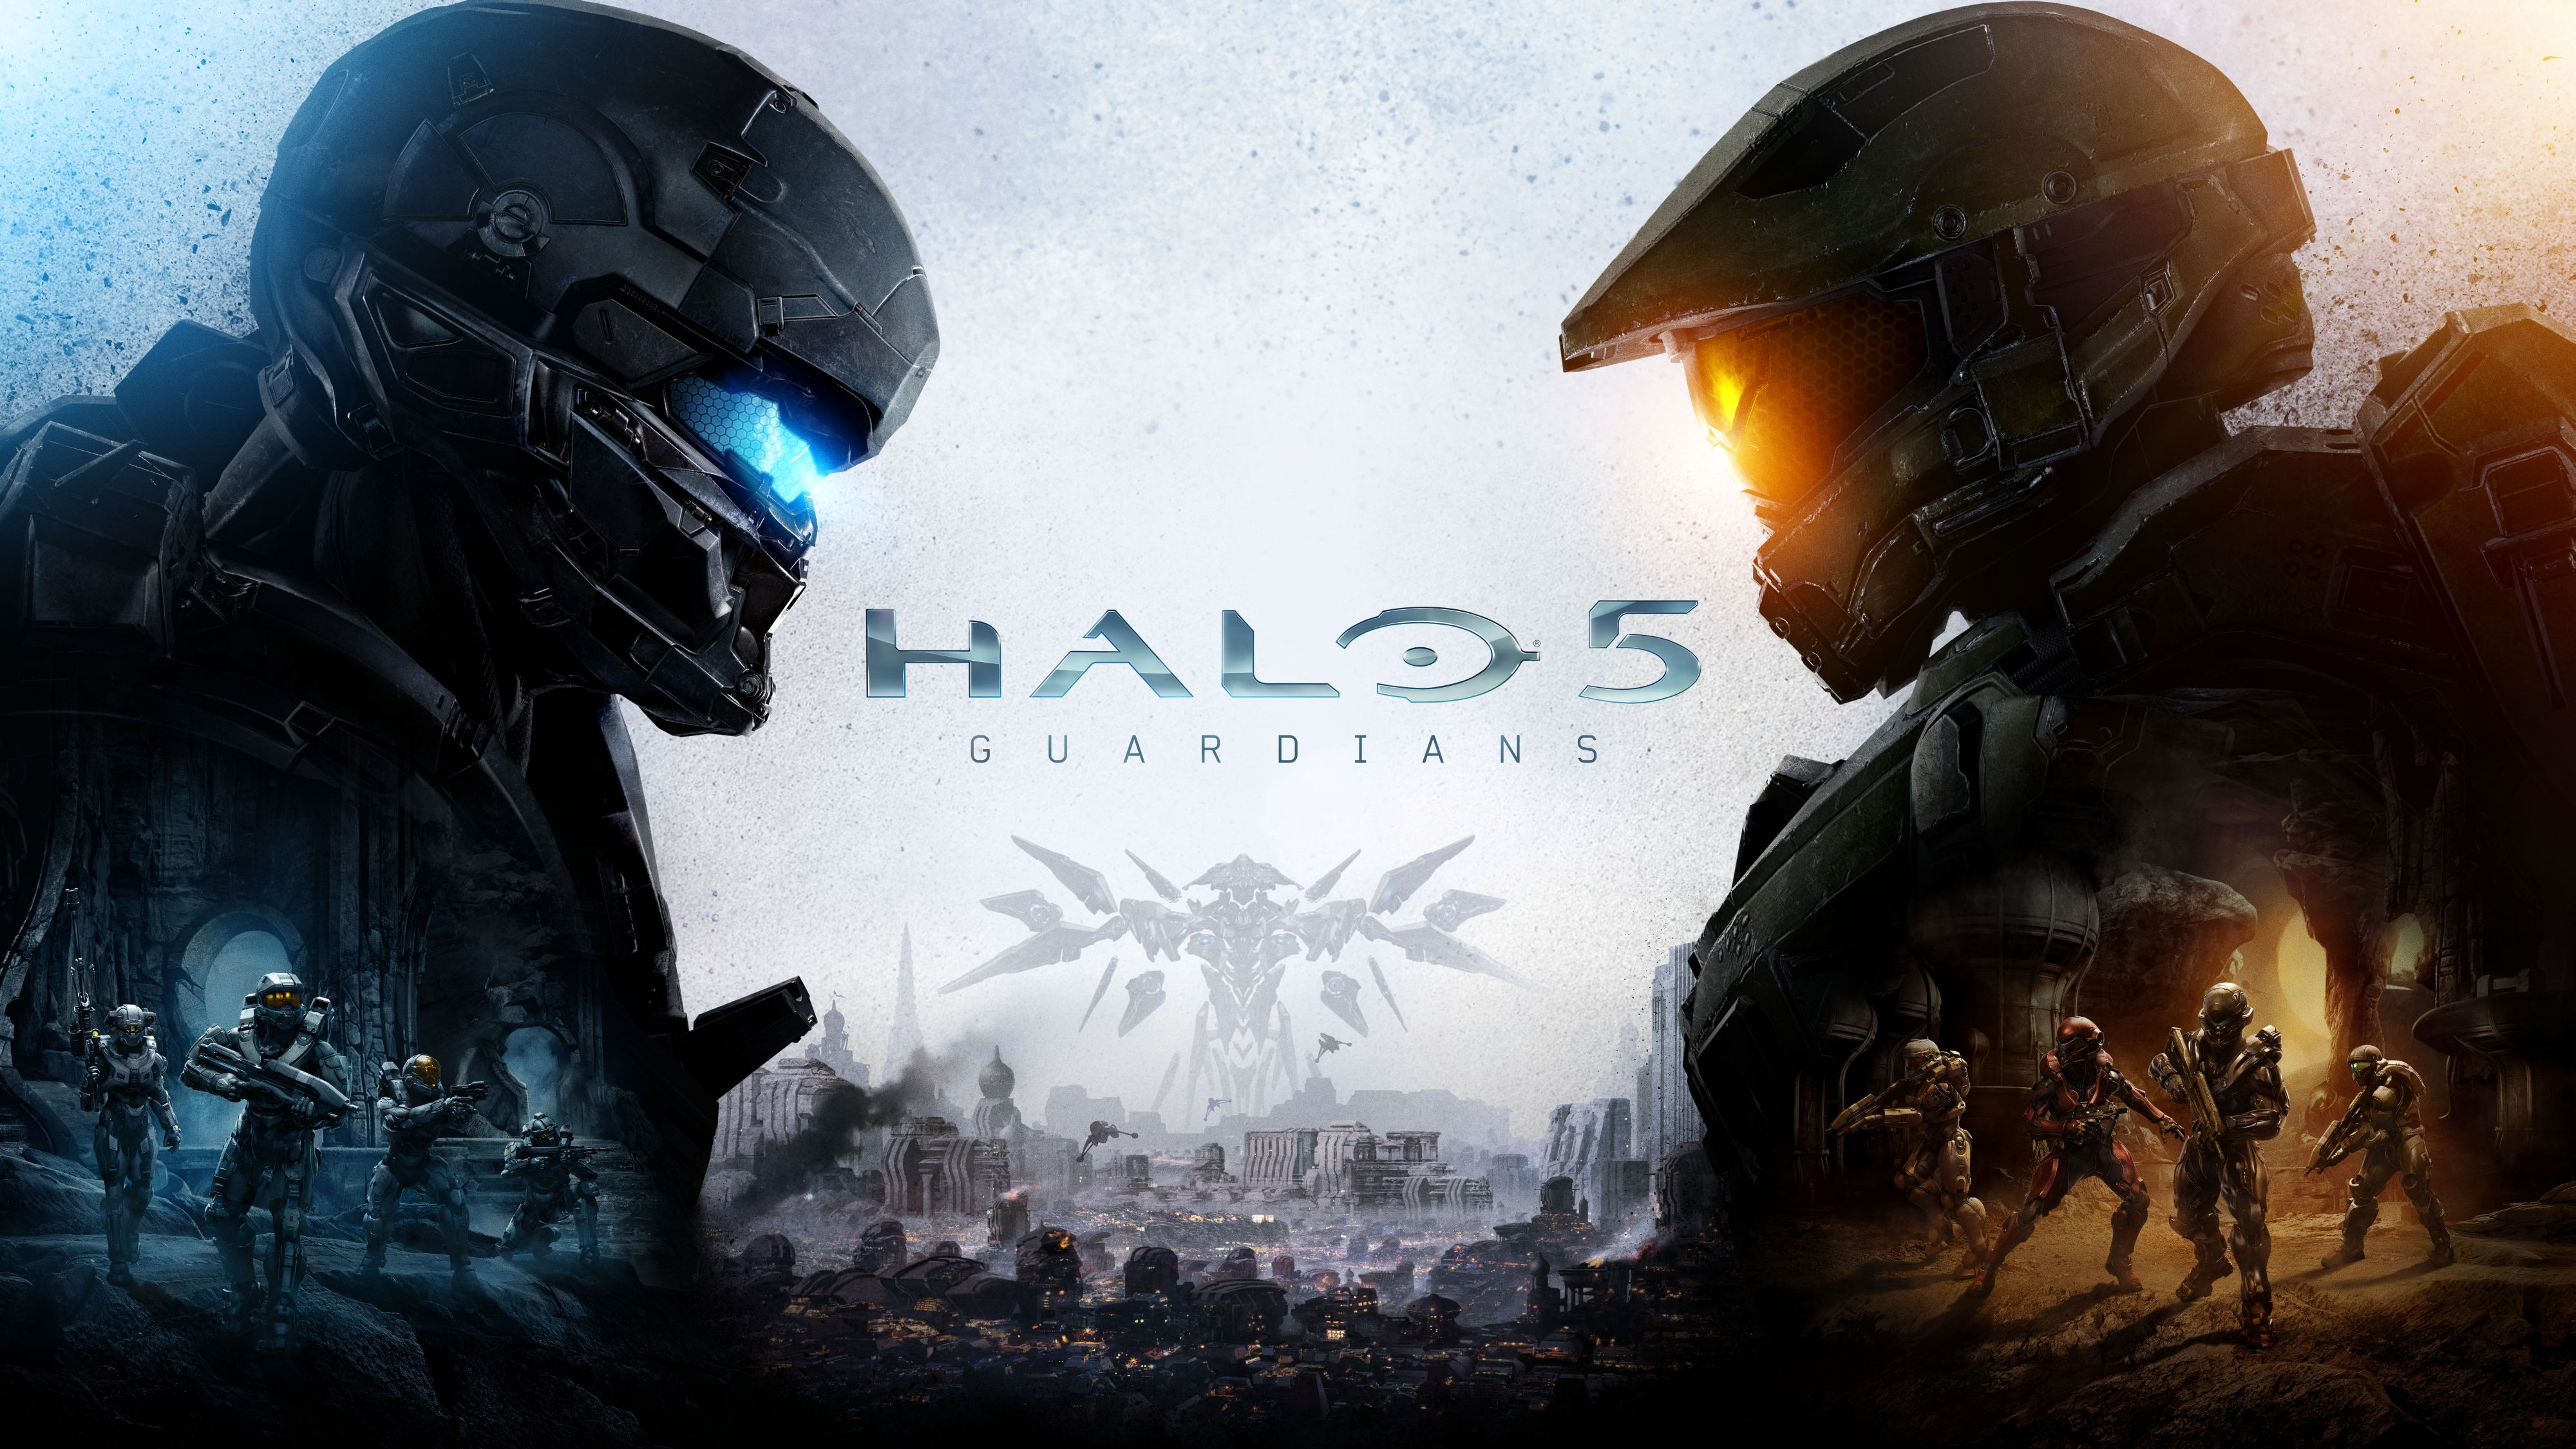 Halo 5 Guardians - Xbox One E3 Frame-Rate Test